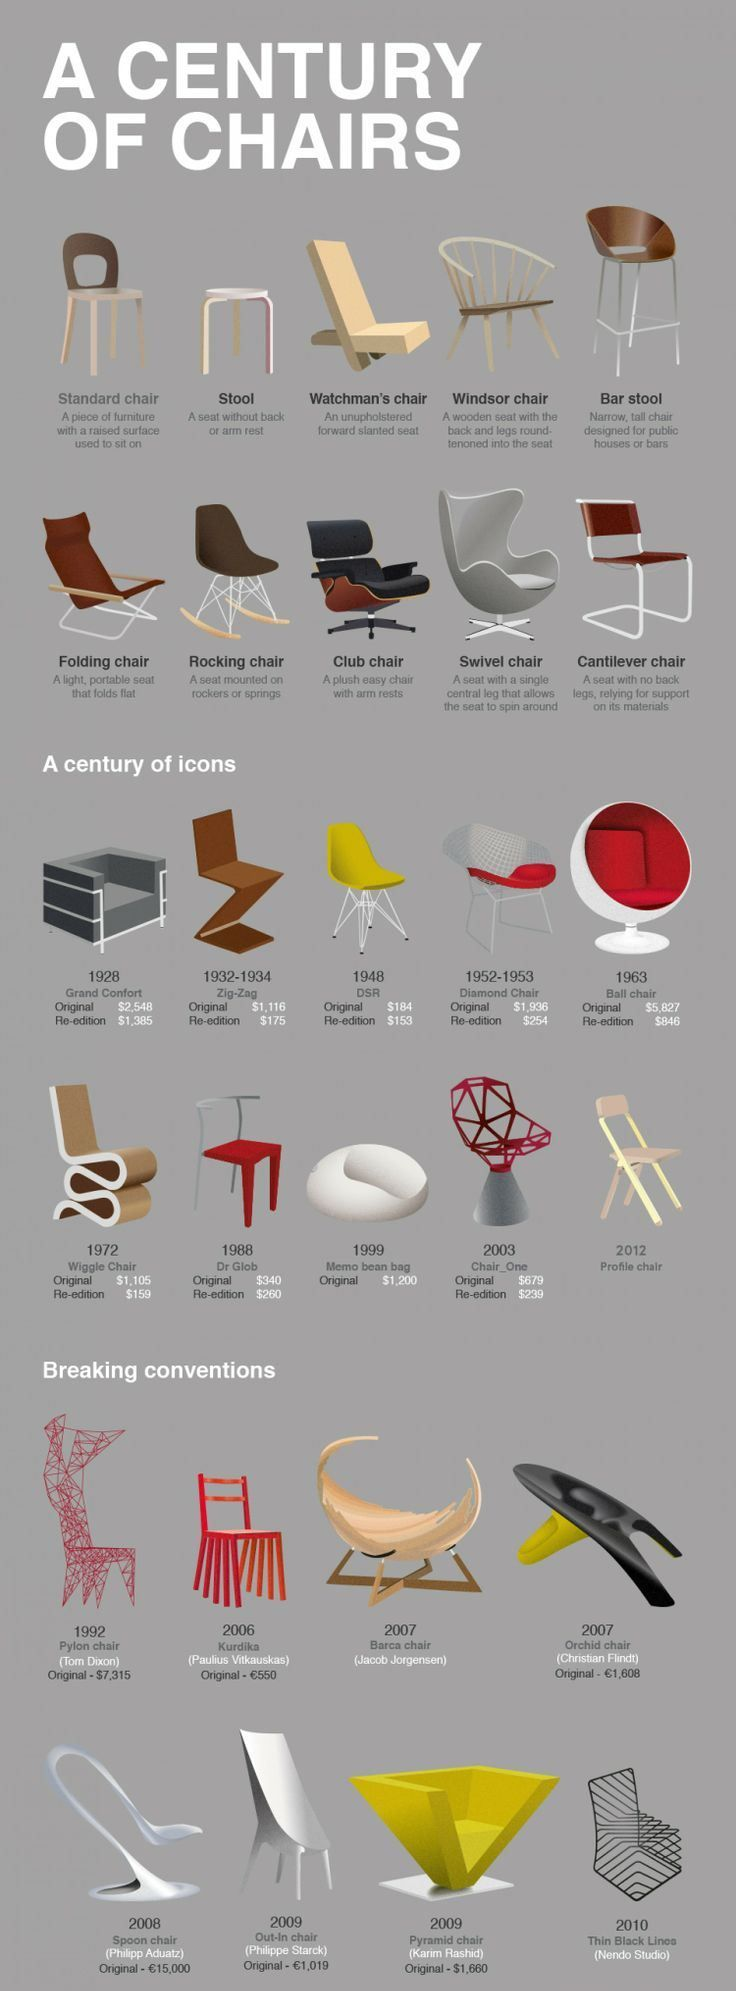 A century of chairs #infographic.